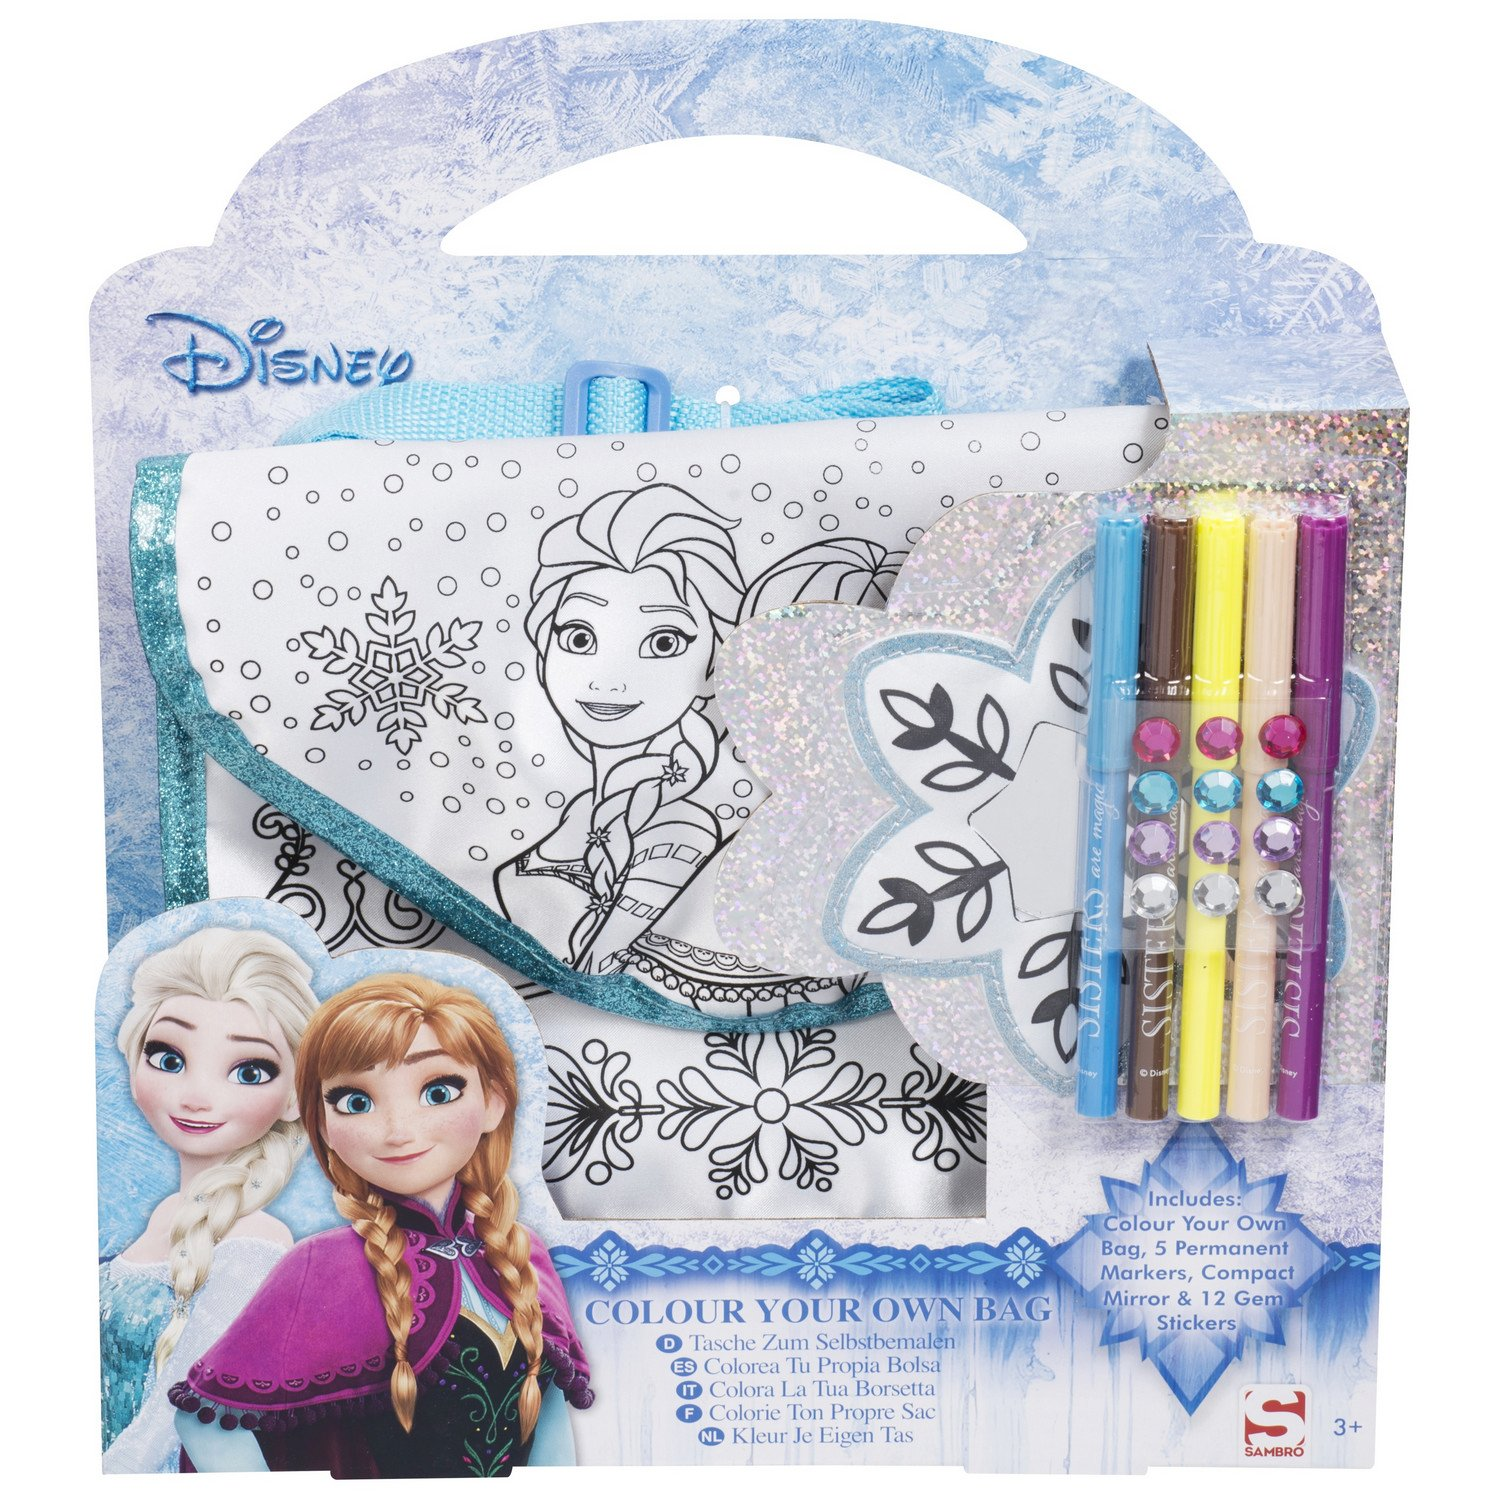 Craft Set Markers,GEM Stickers,Mirror My Little Pony Colour Your Own Totebag